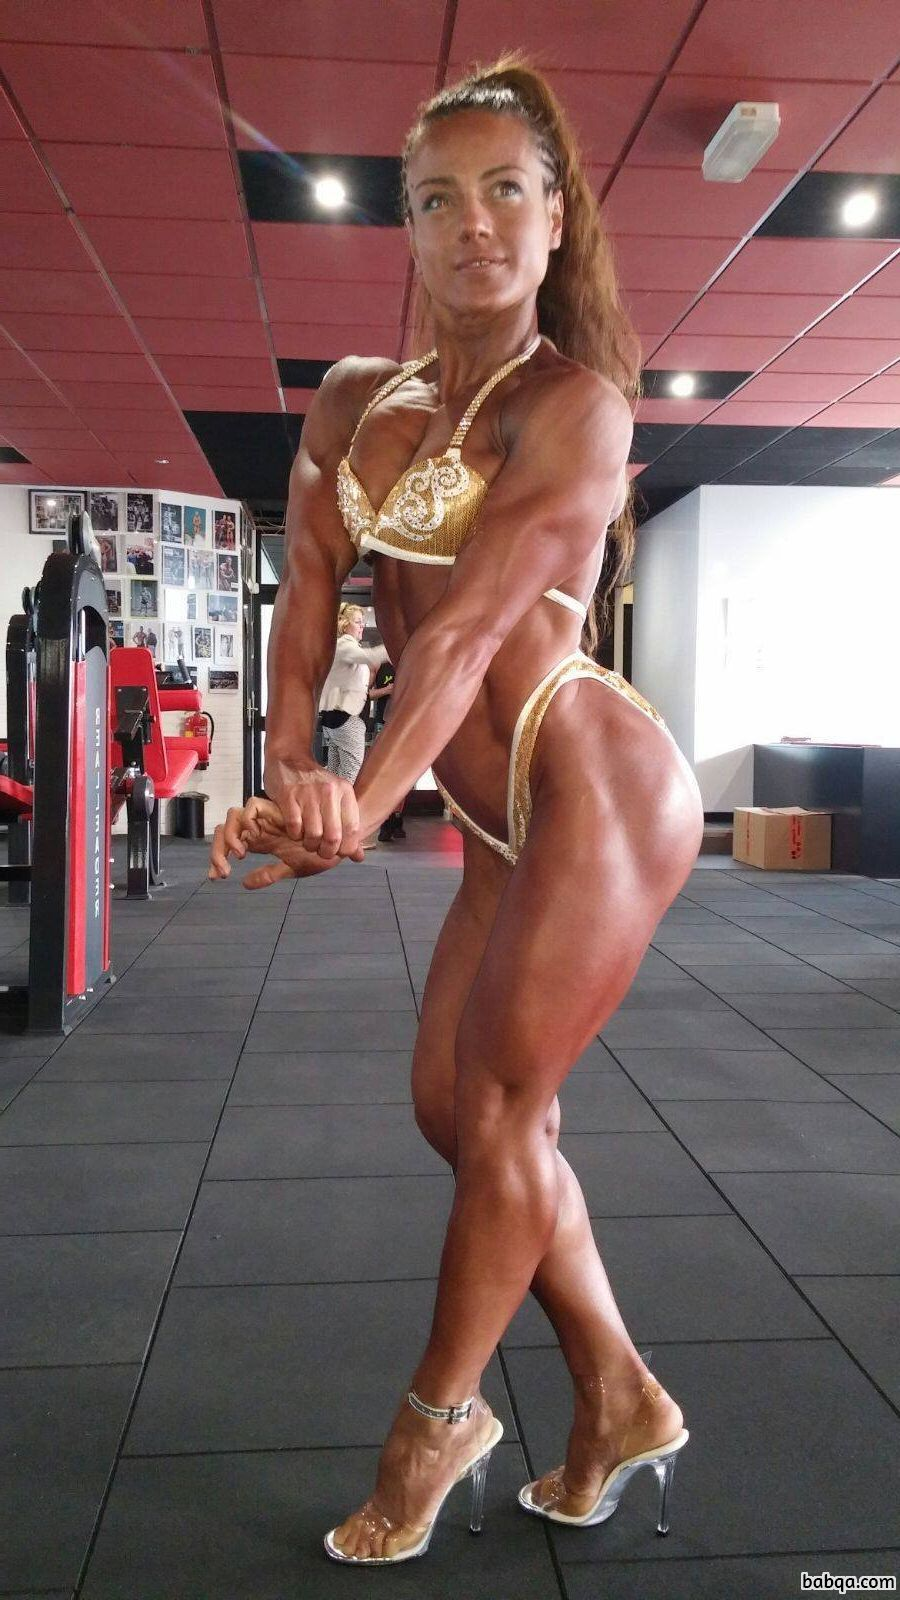 hottest girl with muscle body and toned booty image from reddit